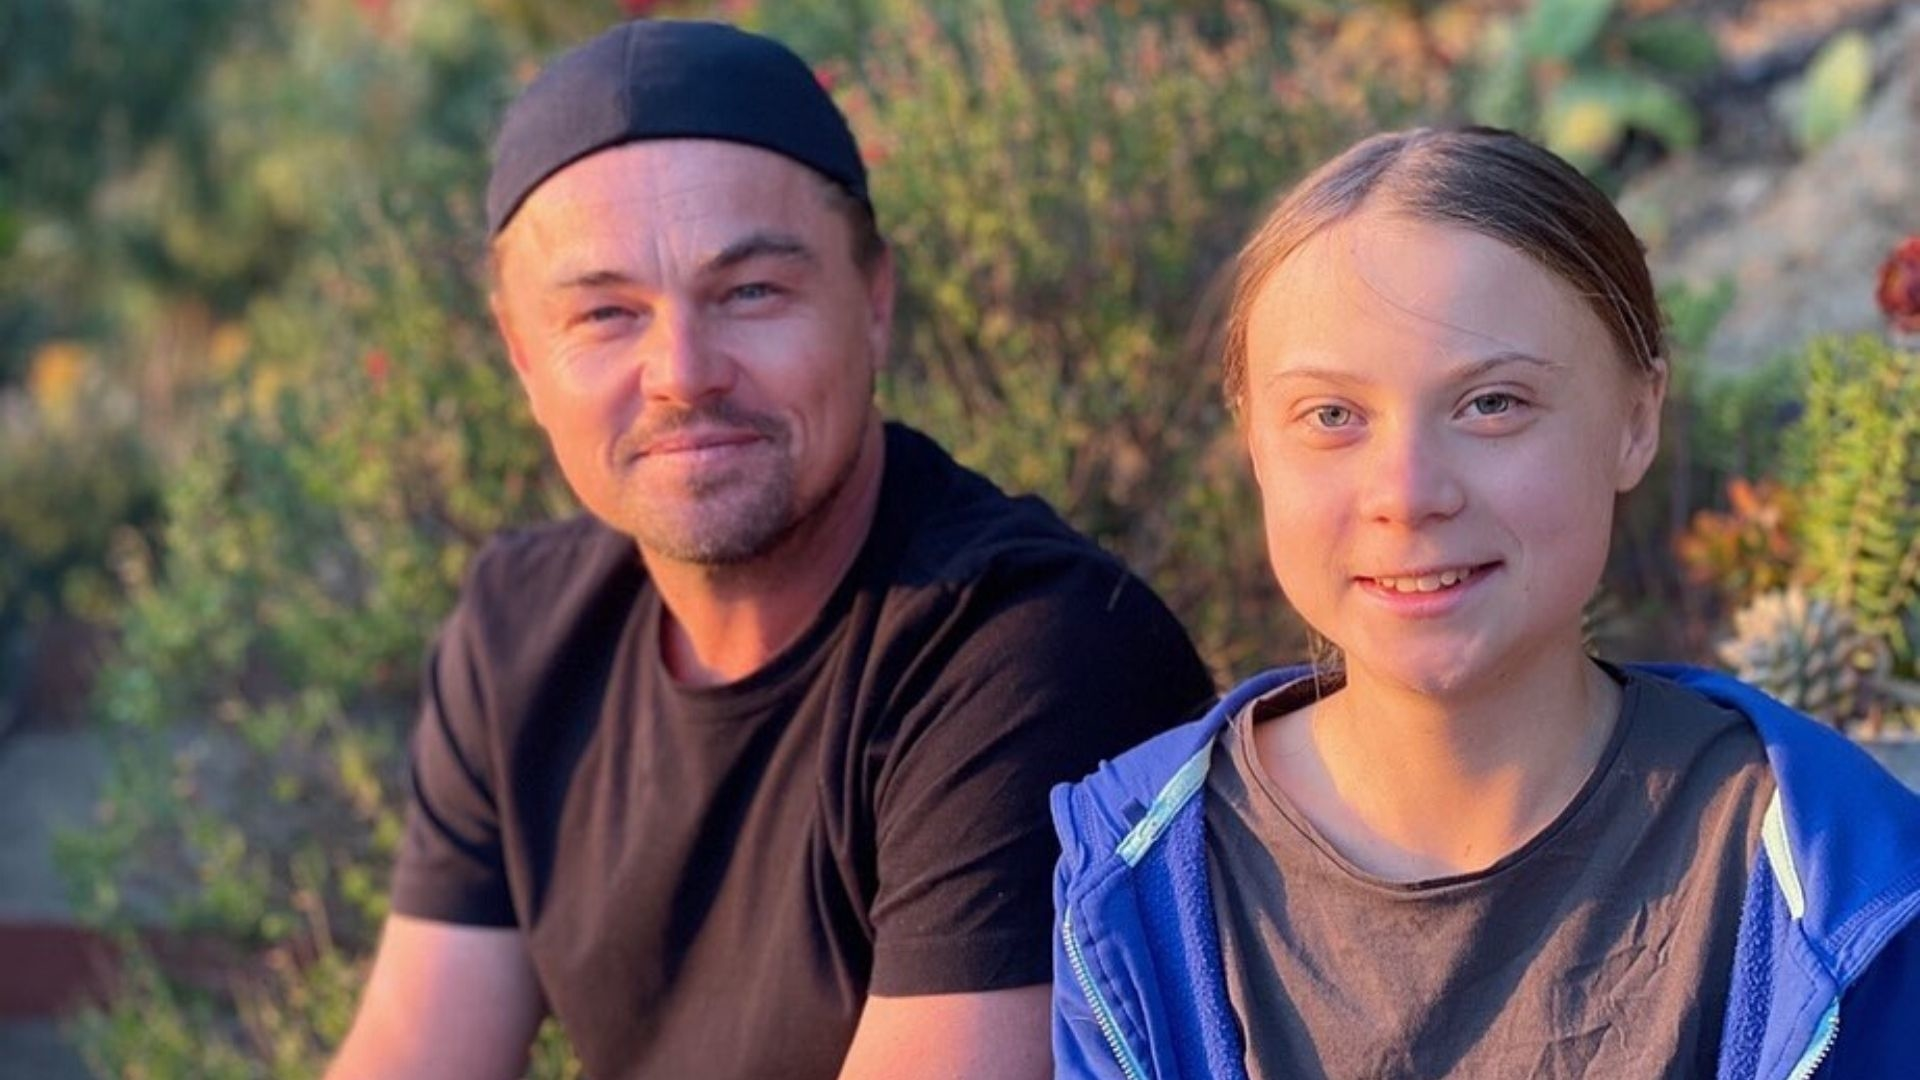 Leonardo DiCaprio Shares An Inspirational Message On Instagram With Greta Thunberg